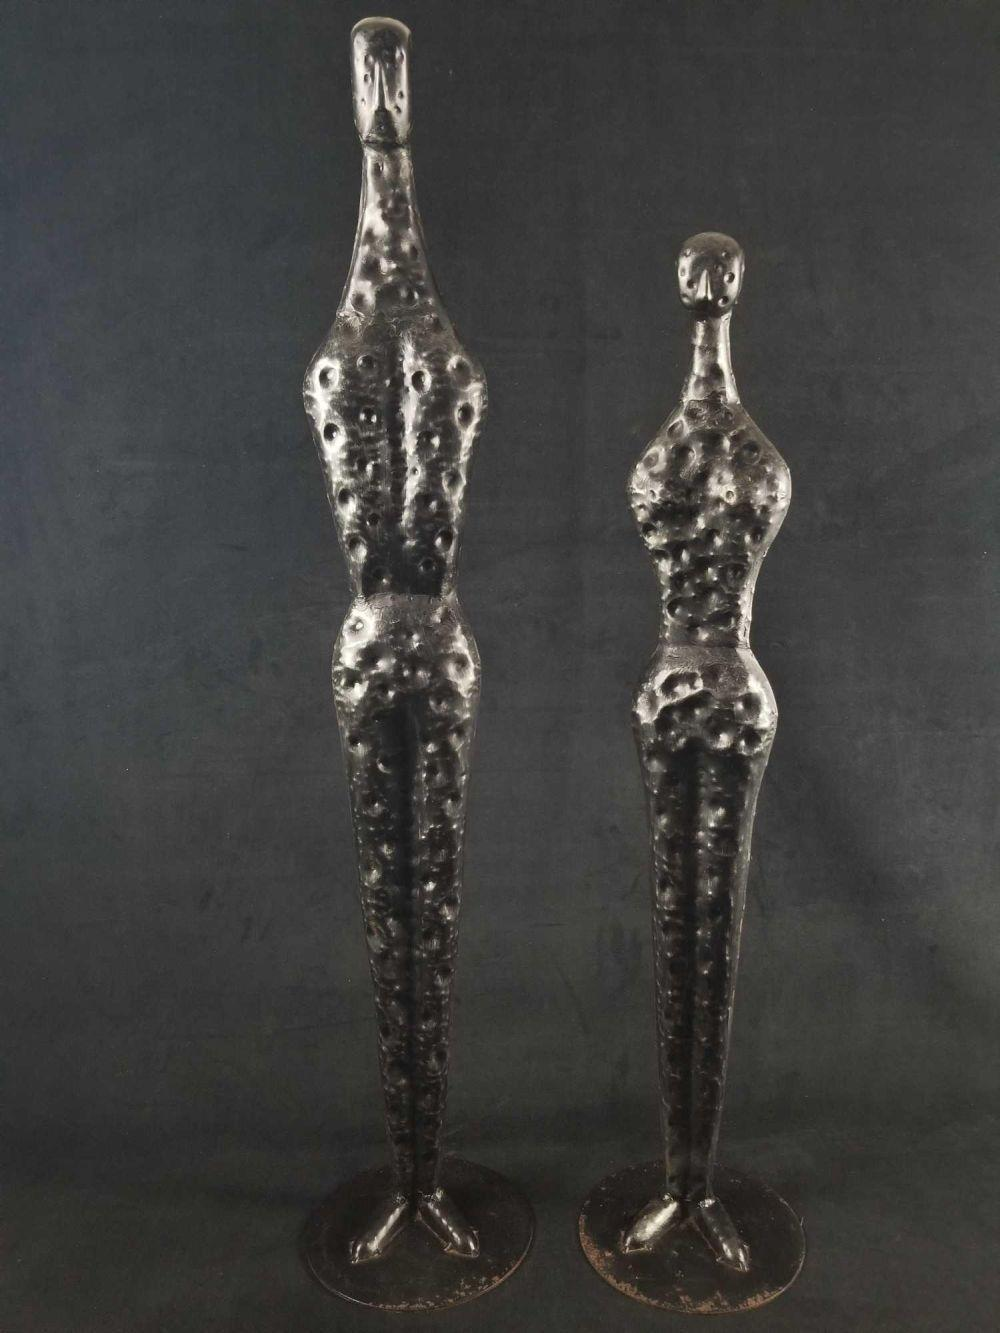 Lot 216: Set of 2 Contemporary Abstract Silhouette Sculptures